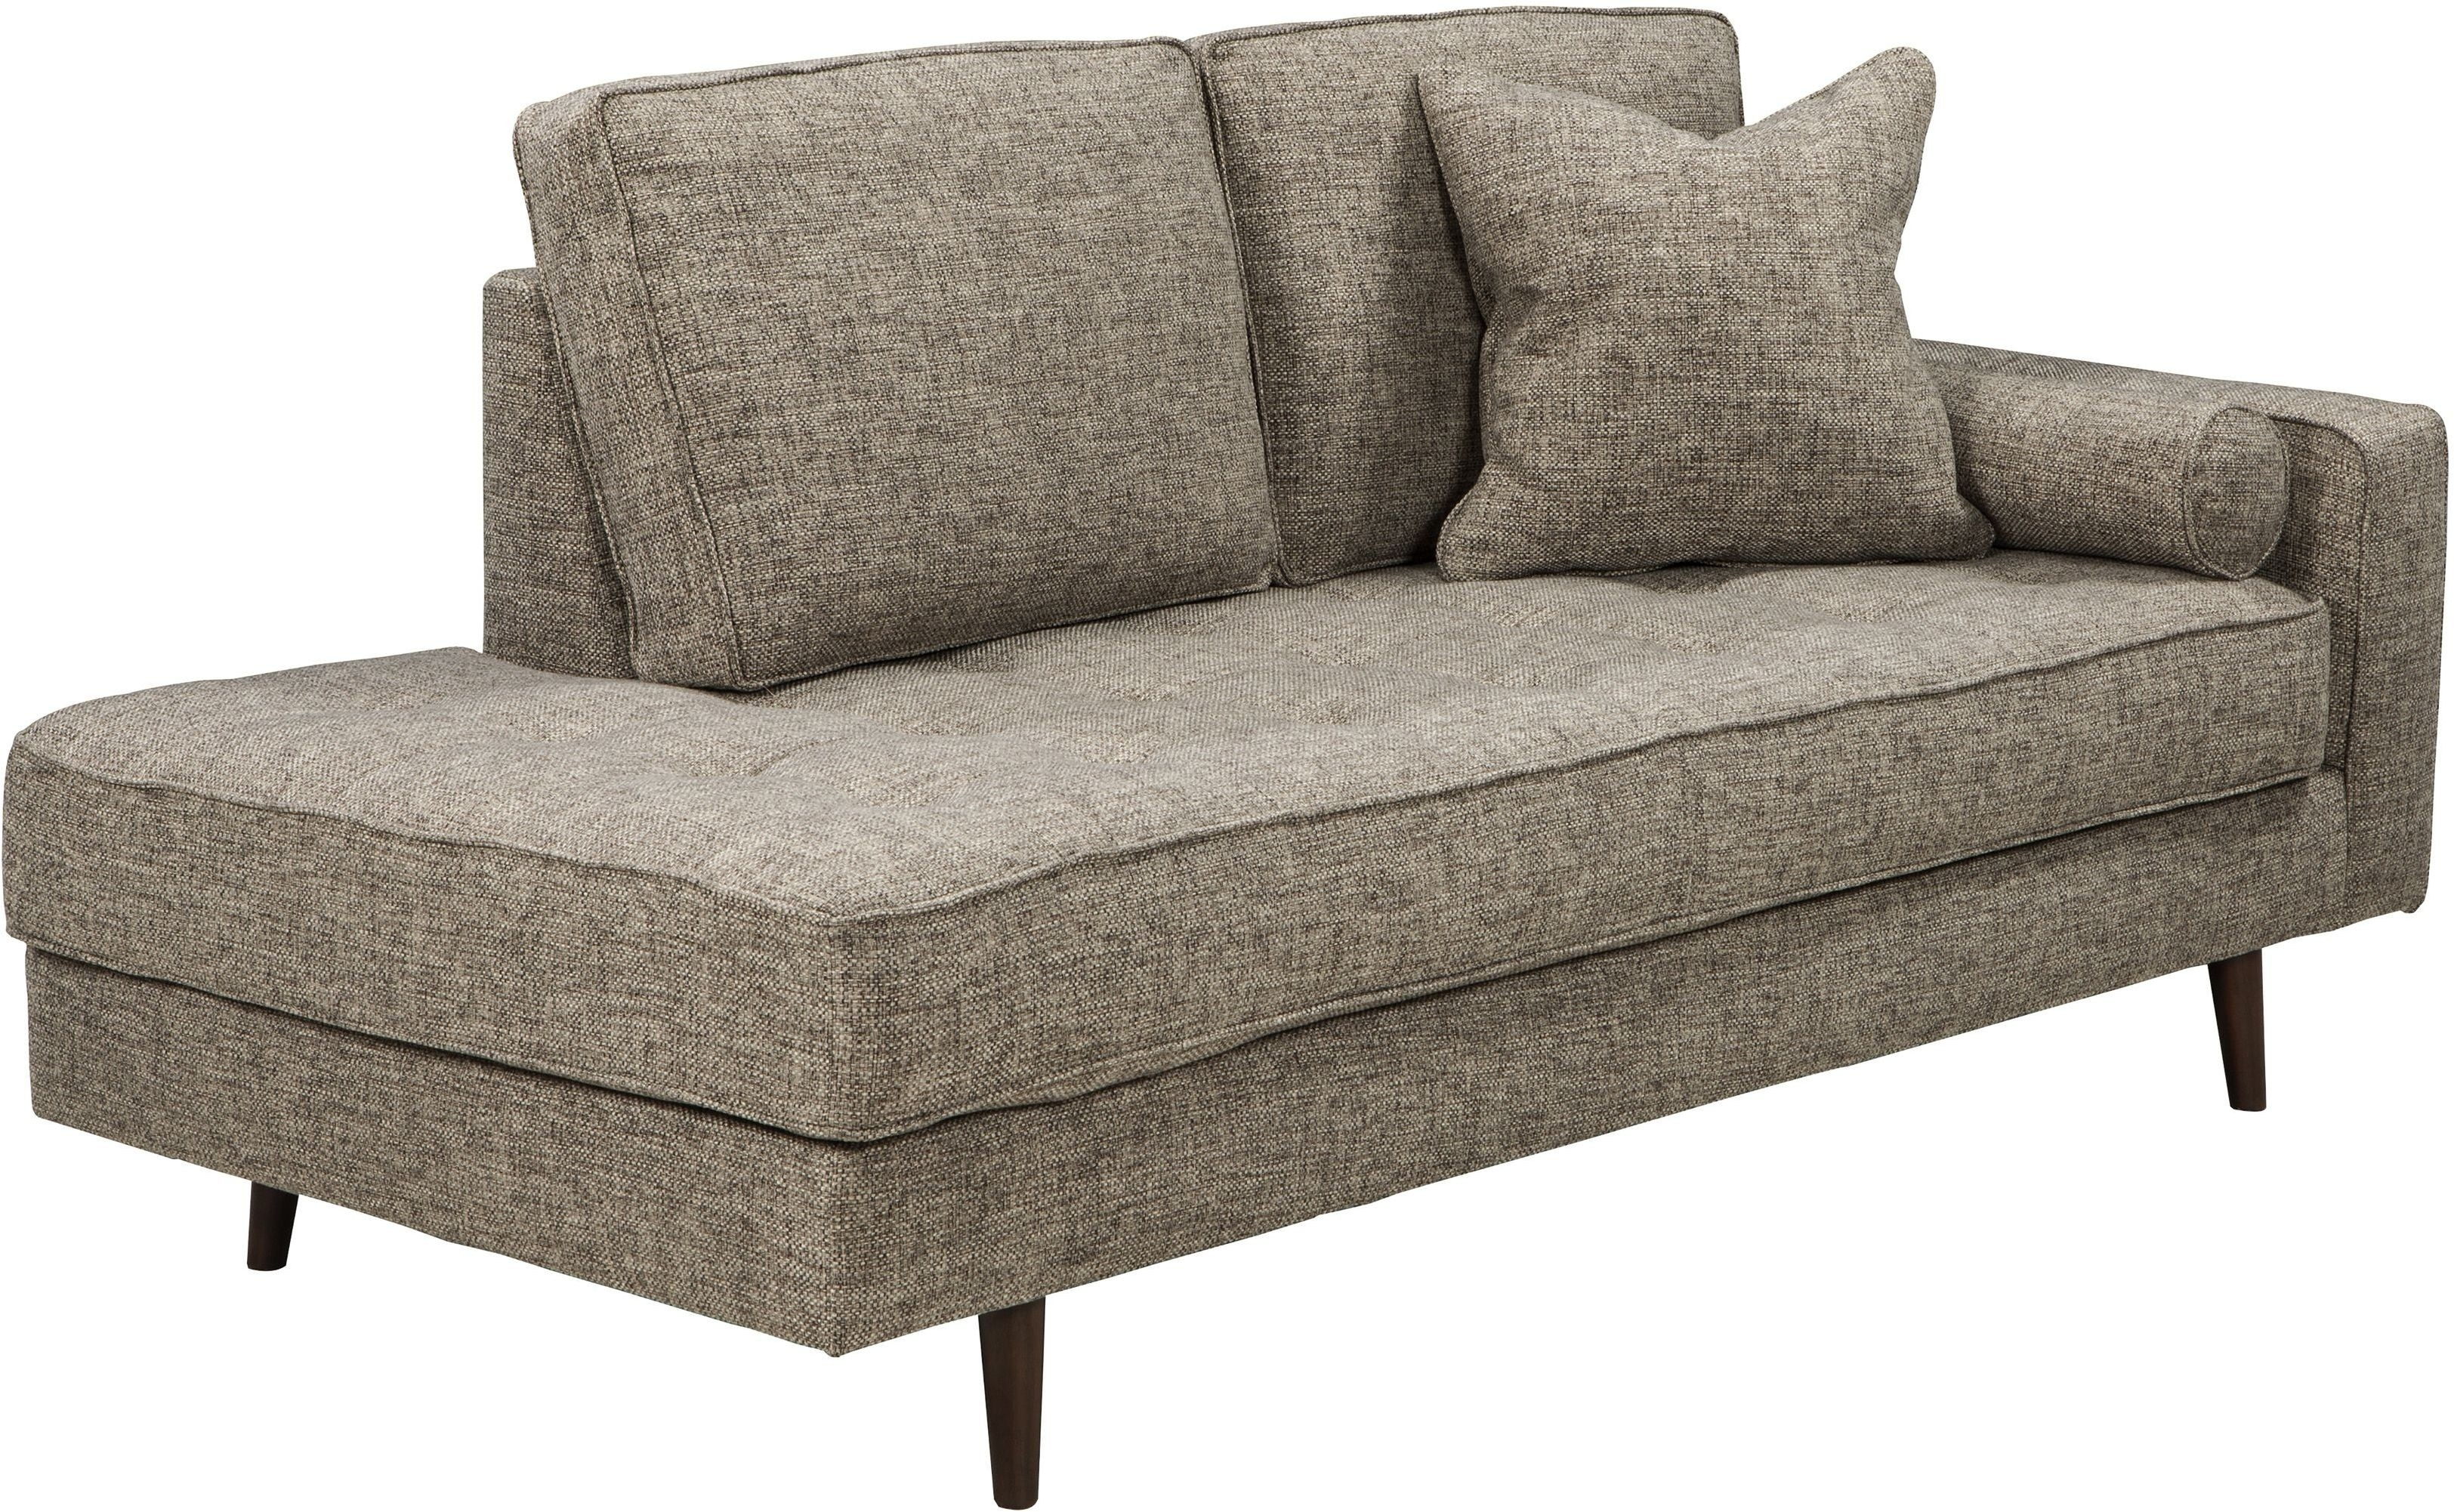 Best Solutions Of Raf Chaise For Your Norfolk Chocolate 3 Piece With Norfolk Chocolate 3 Piece Sectionals With Raf Chaise (Image 4 of 25)